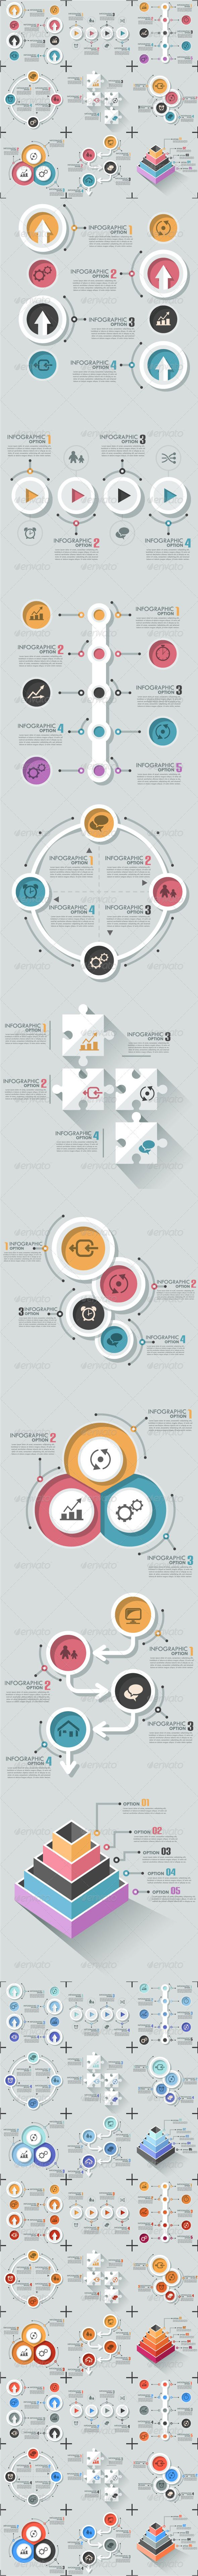 Set Of 9 Flat Infographic Options Templates #design Download: http://graphicriver.net/item/set-of-9-flat-infographic-options-templates/8063679?ref=ksioks